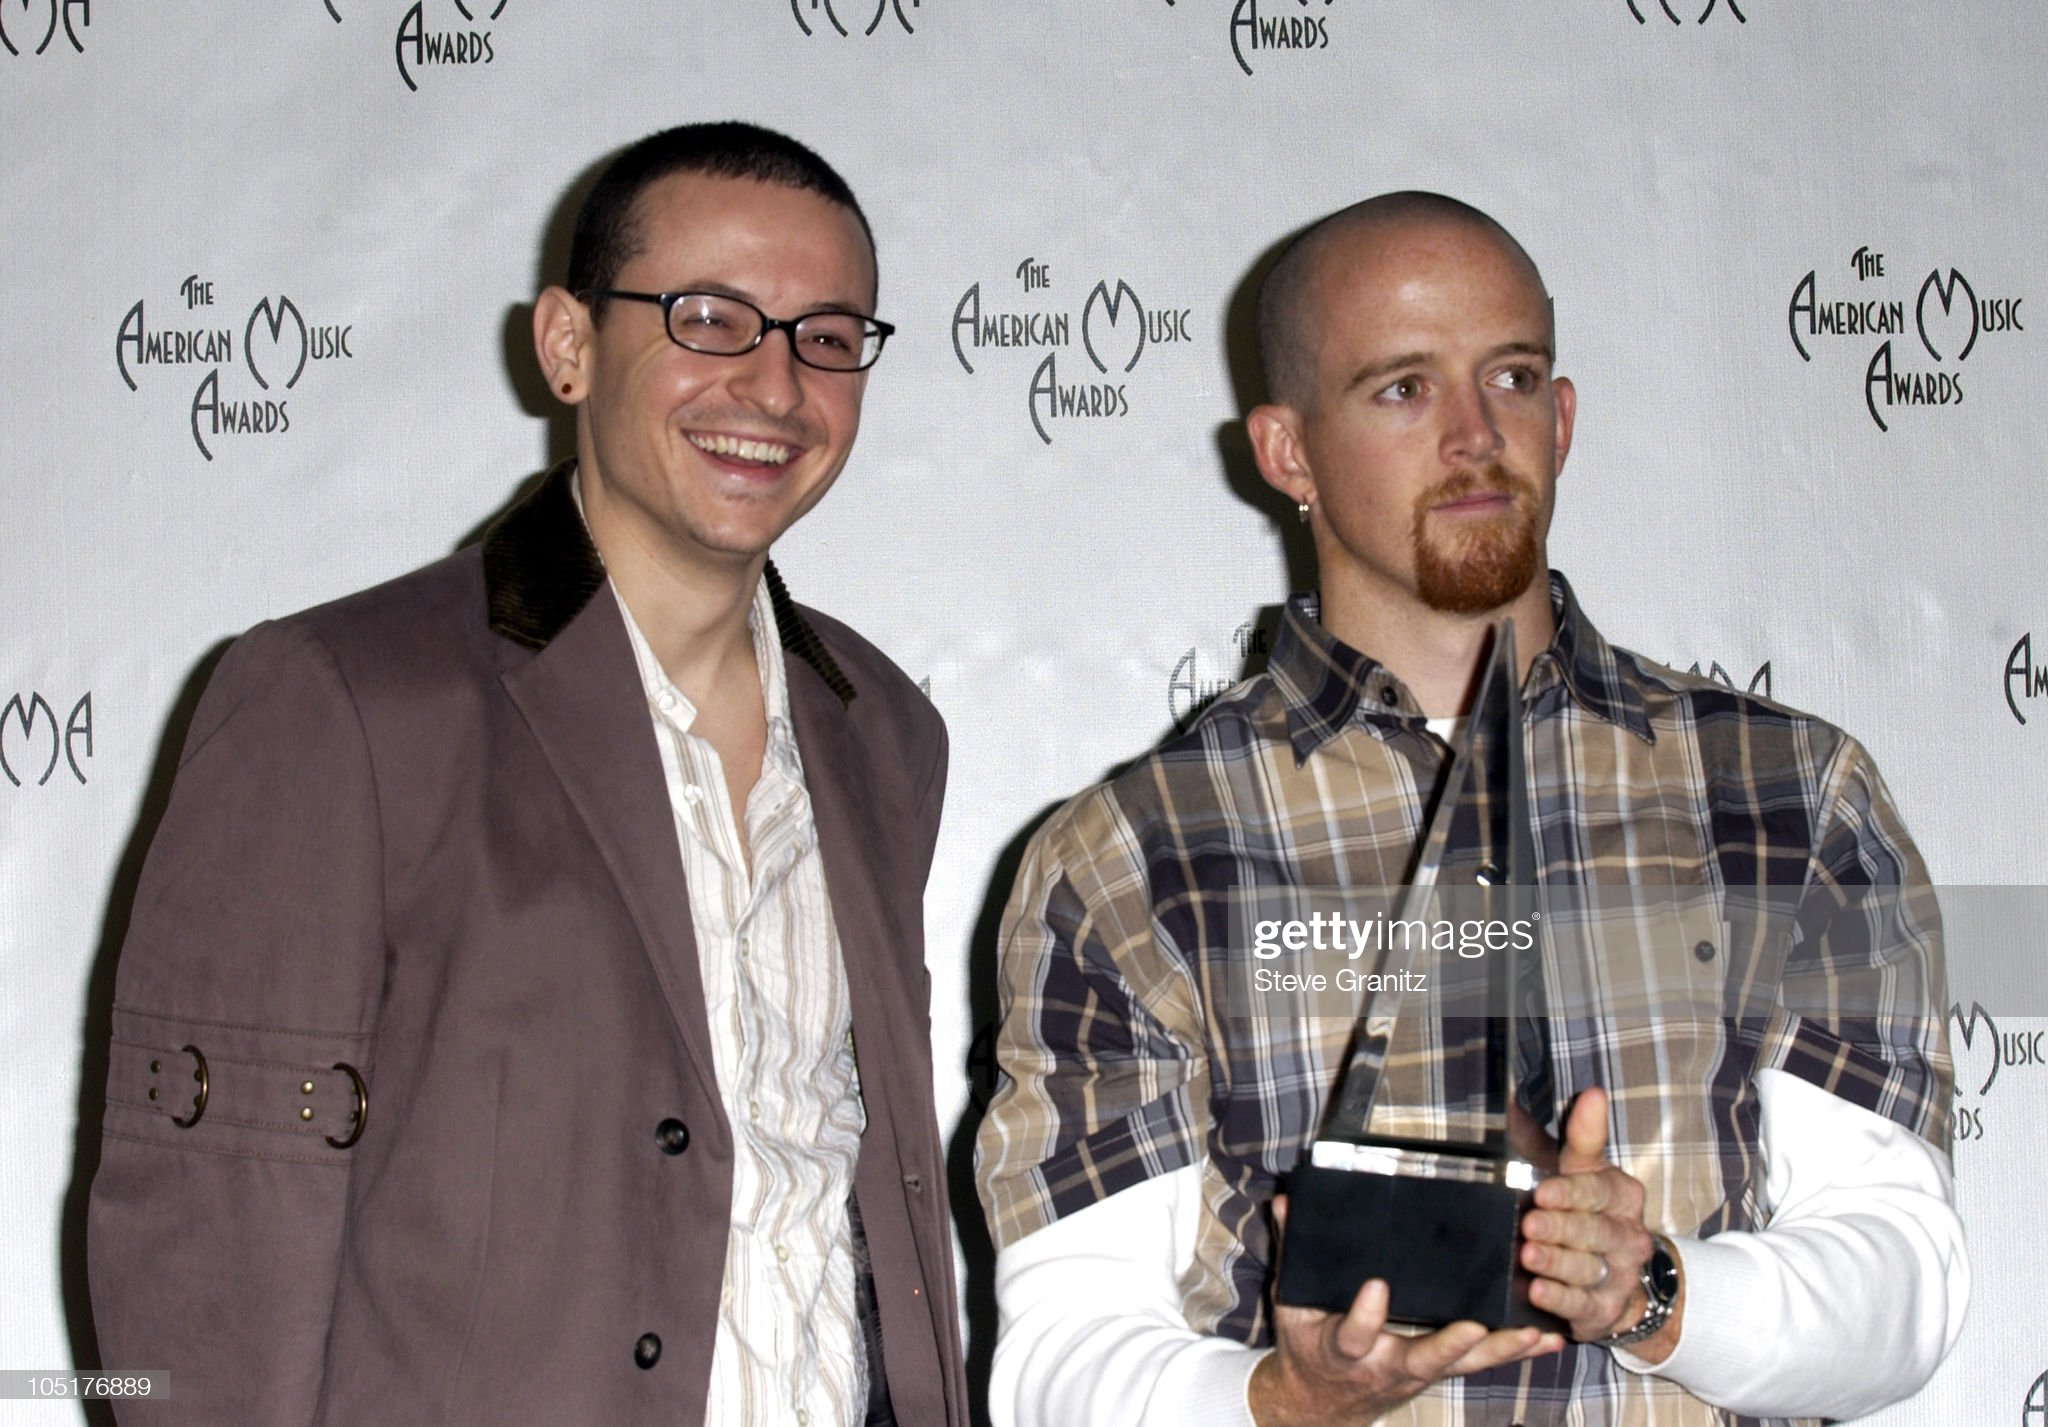 ¿Cuánto mide Chester Bennington? - Altura - Real height Chester-bennington-and-phoenix-of-linkin-park-winners-for-favorite-picture-id105176889?s=2048x2048